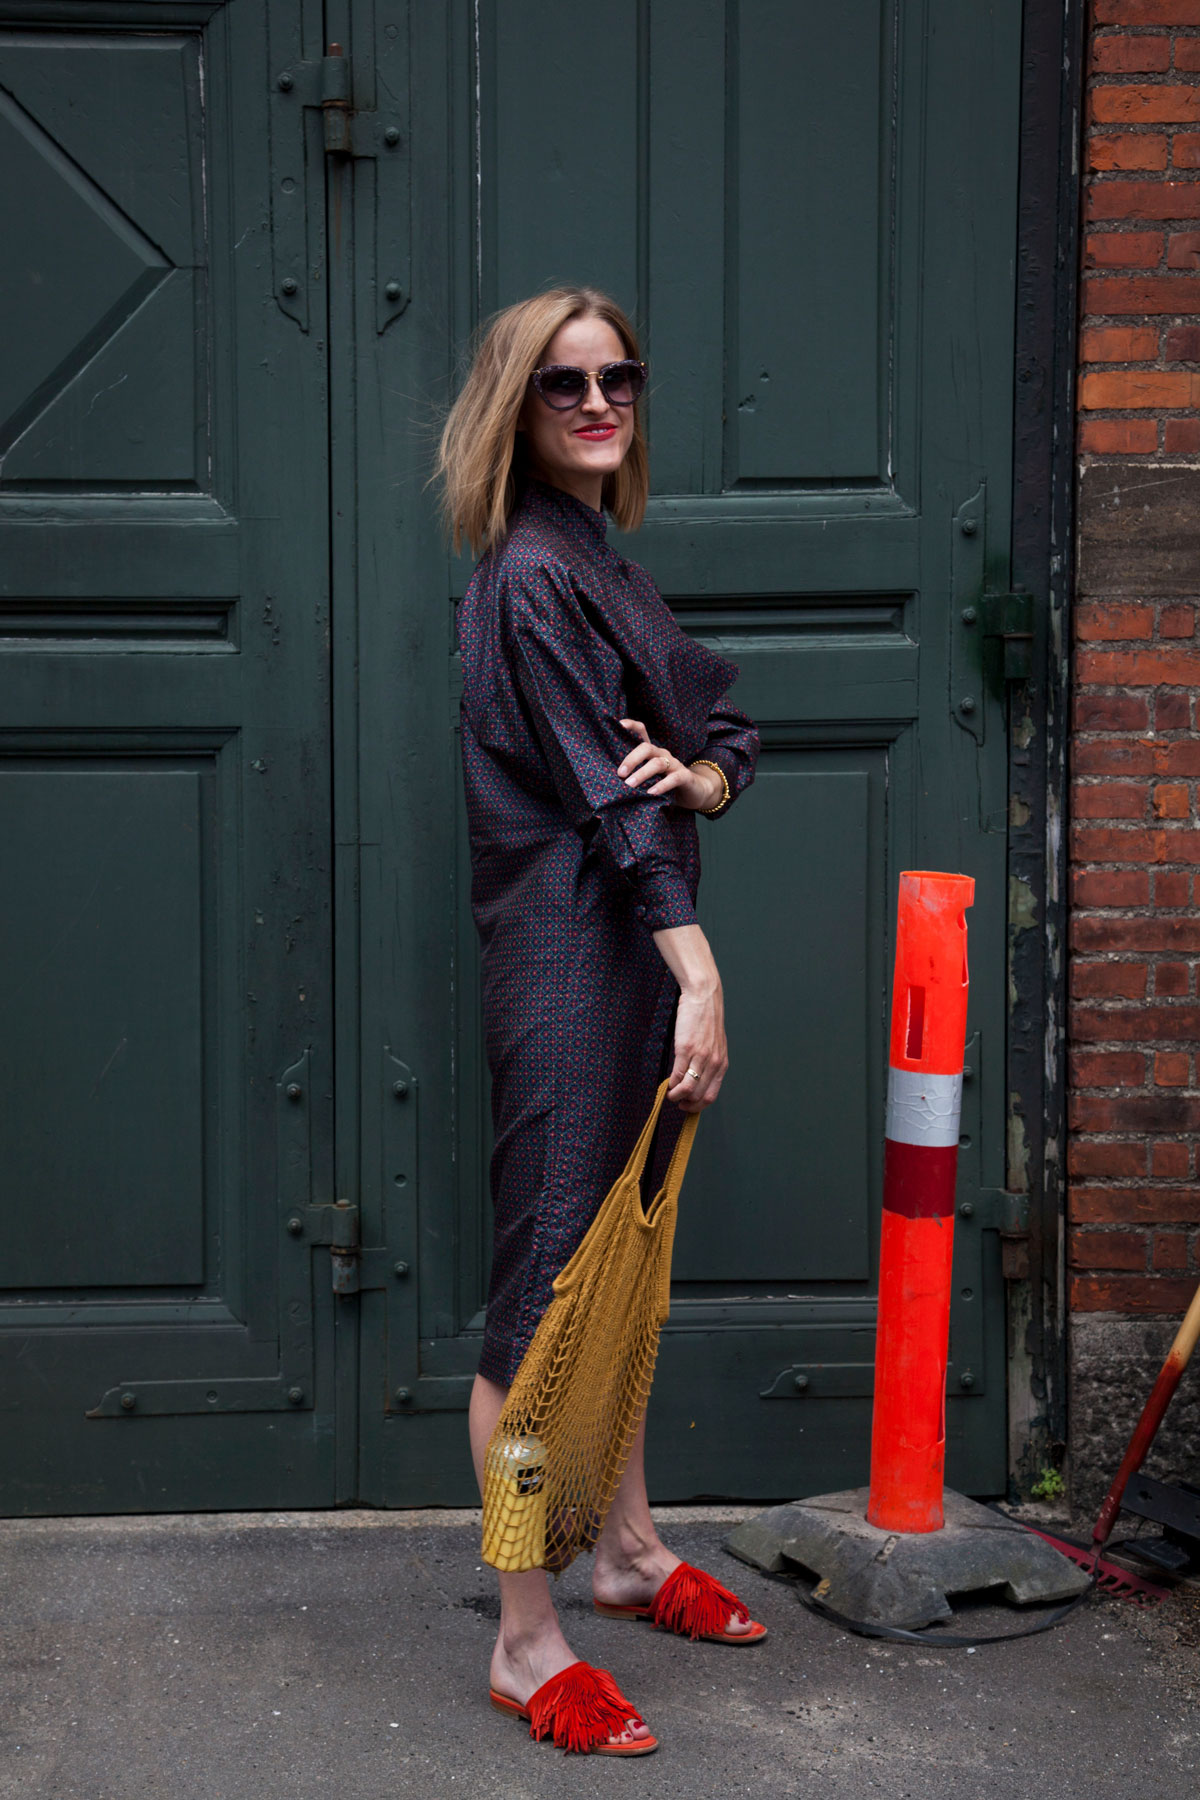 rockpaperdresses, cathrine widunok wichmand, dagens, outfits